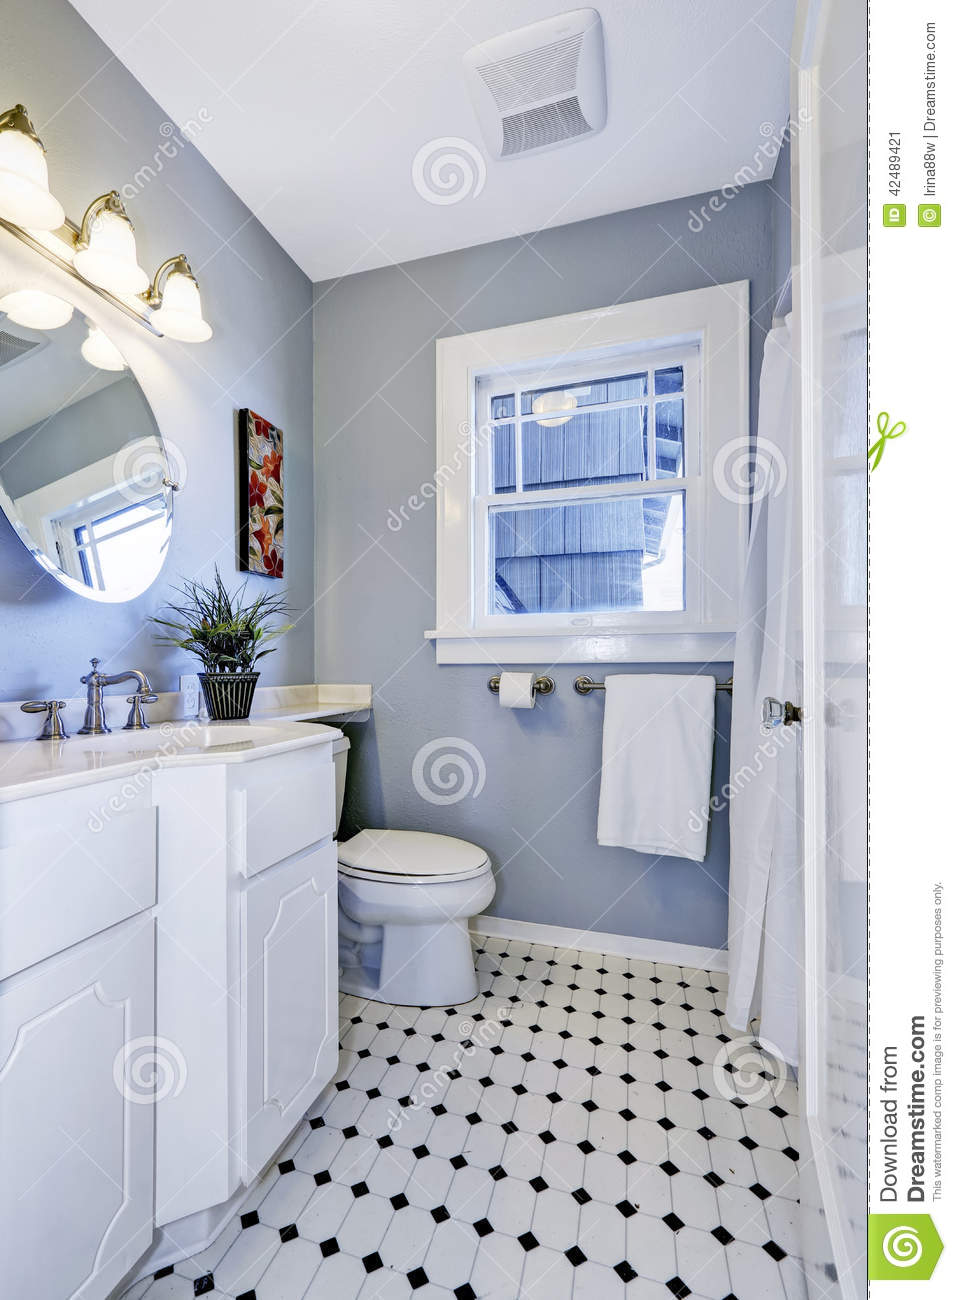 Bright bathroom interior in light blue color stock image image of bright bathroom interior in light blue color mozeypictures Choice Image